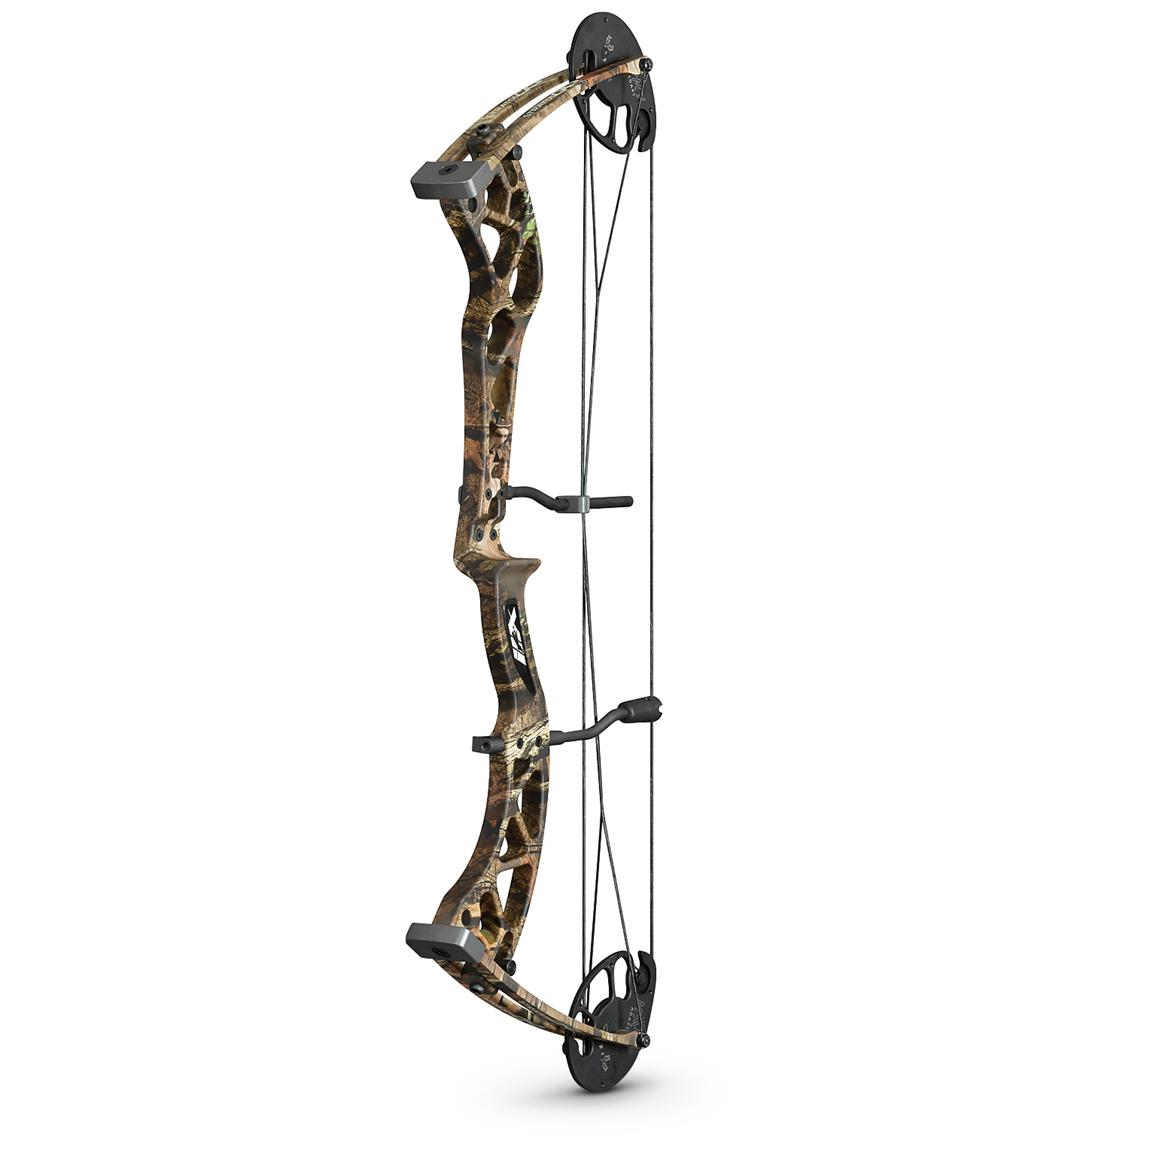 Martin Archery Carbon Stratos CR Compound Bow, 70-lb., Mossy Oak Break-Up Infinity